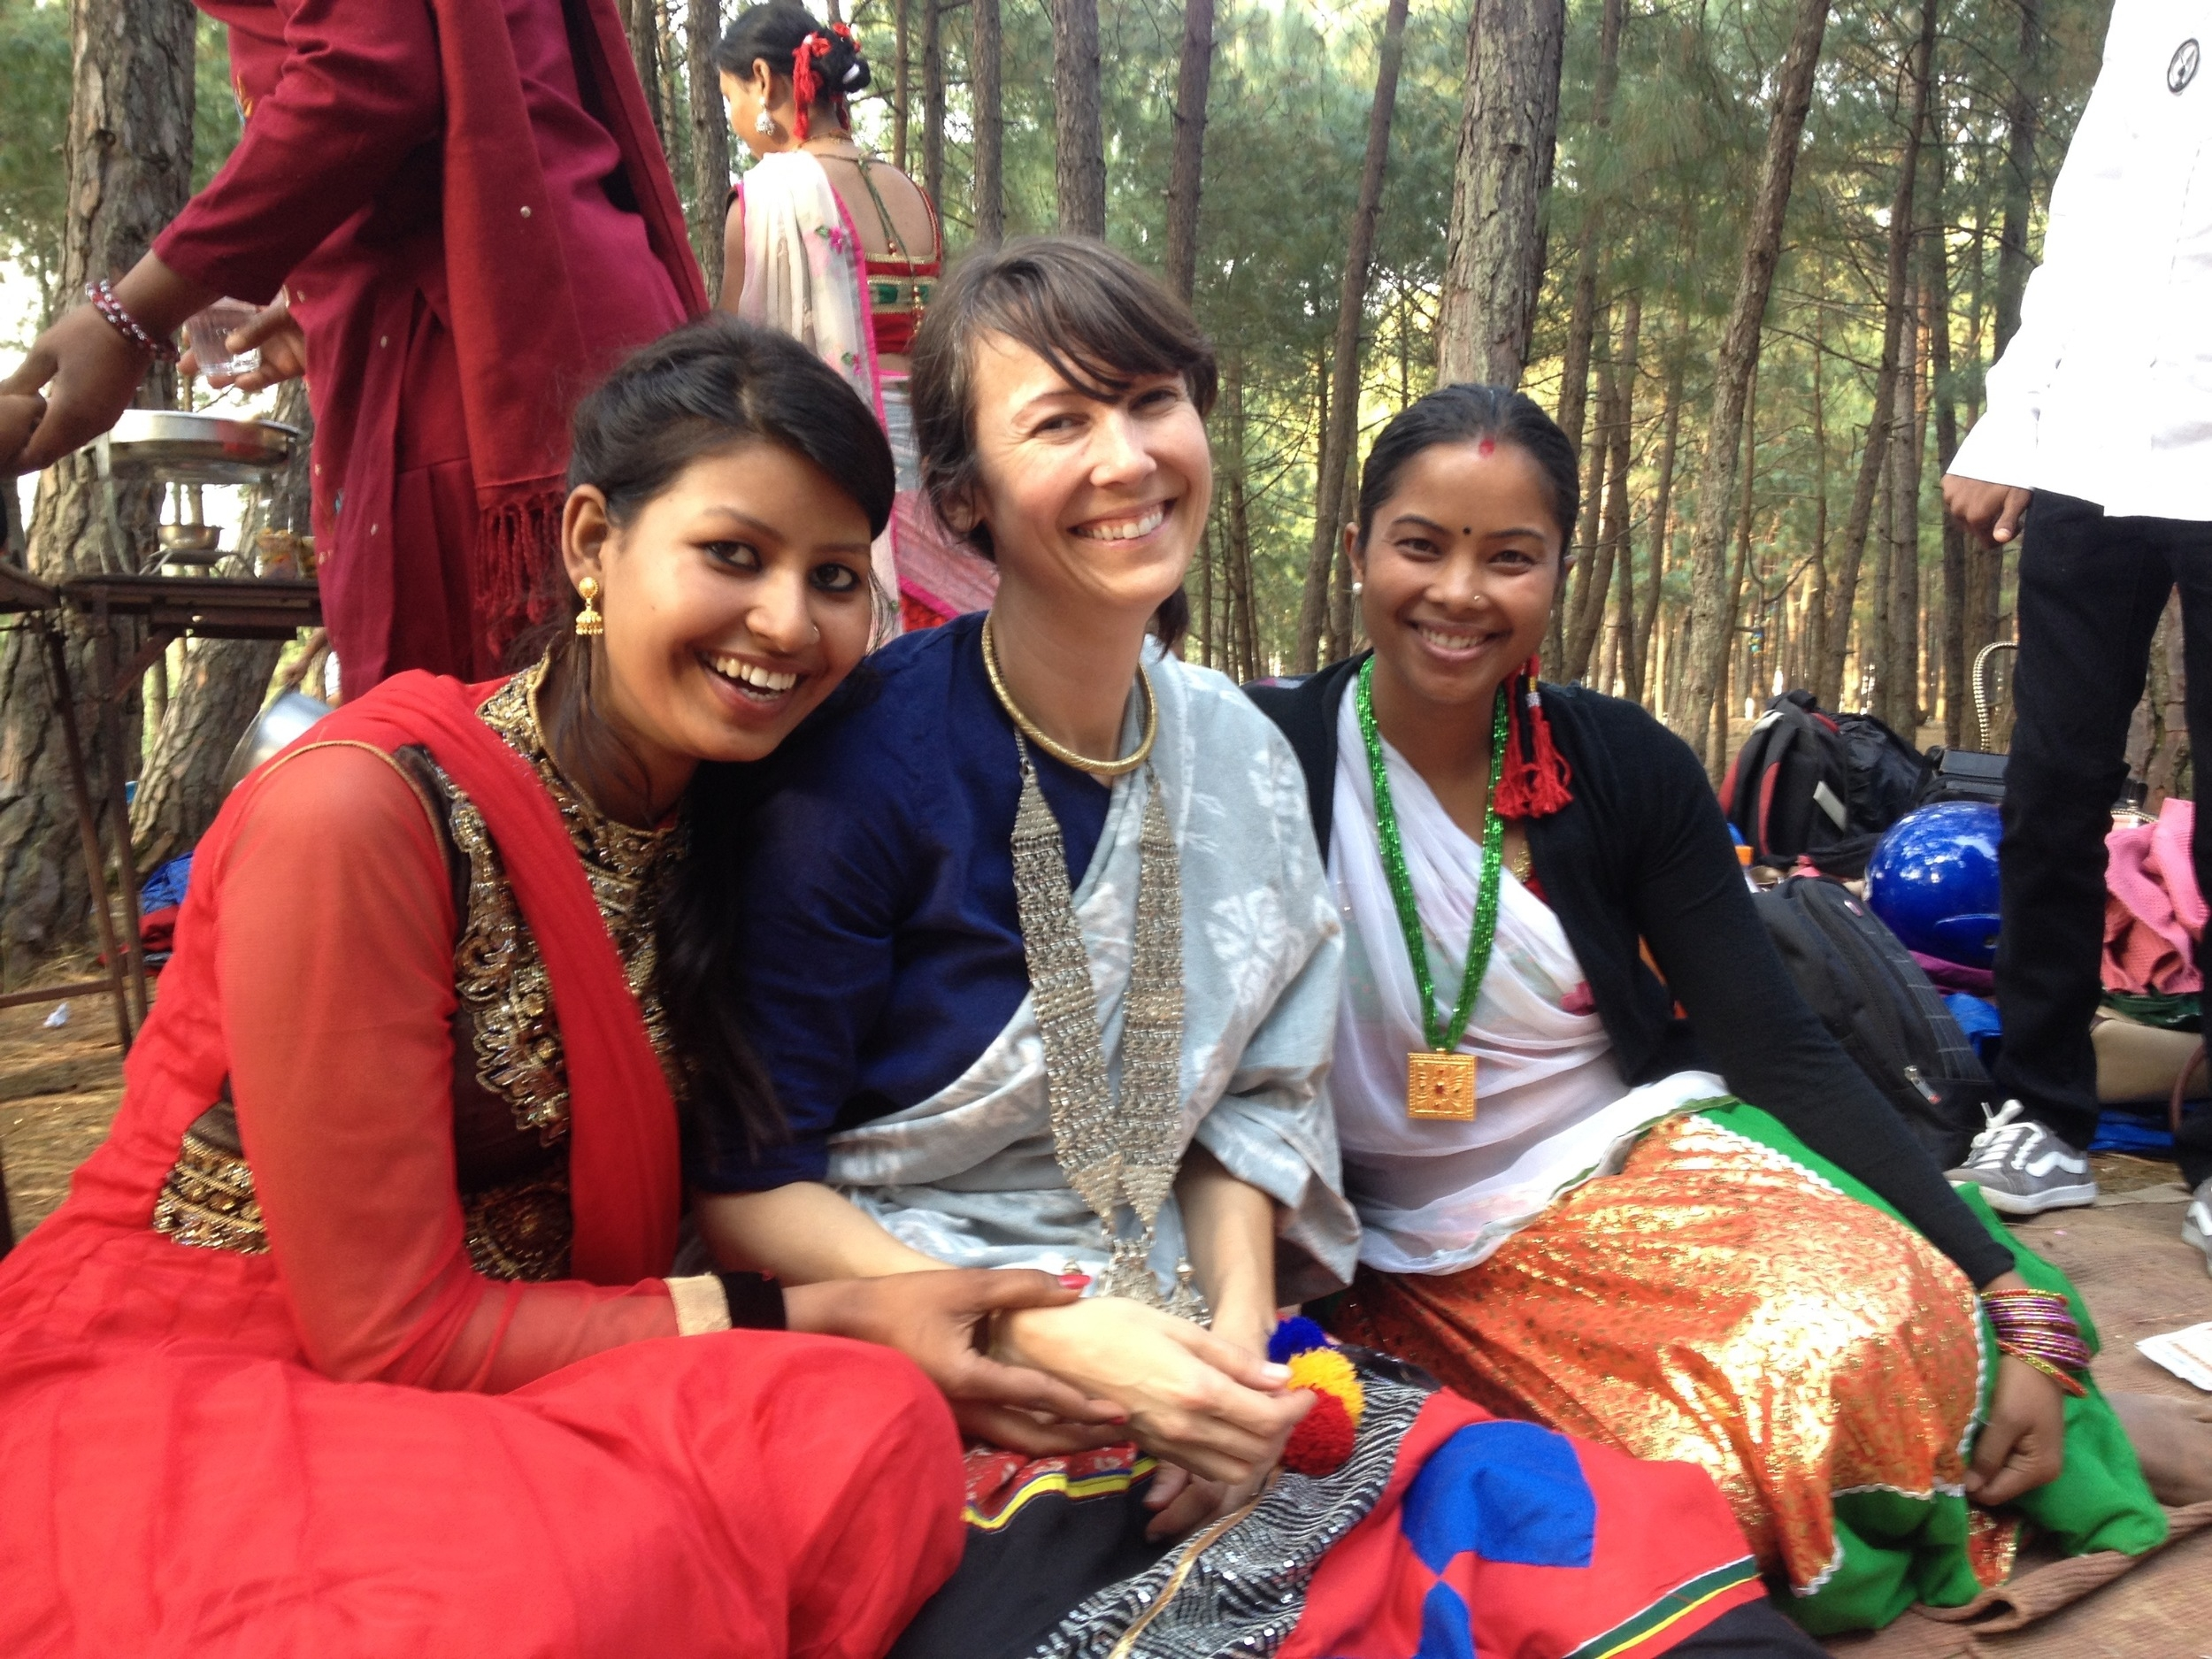 Working on a jewelry program with women in Nepal 2015.